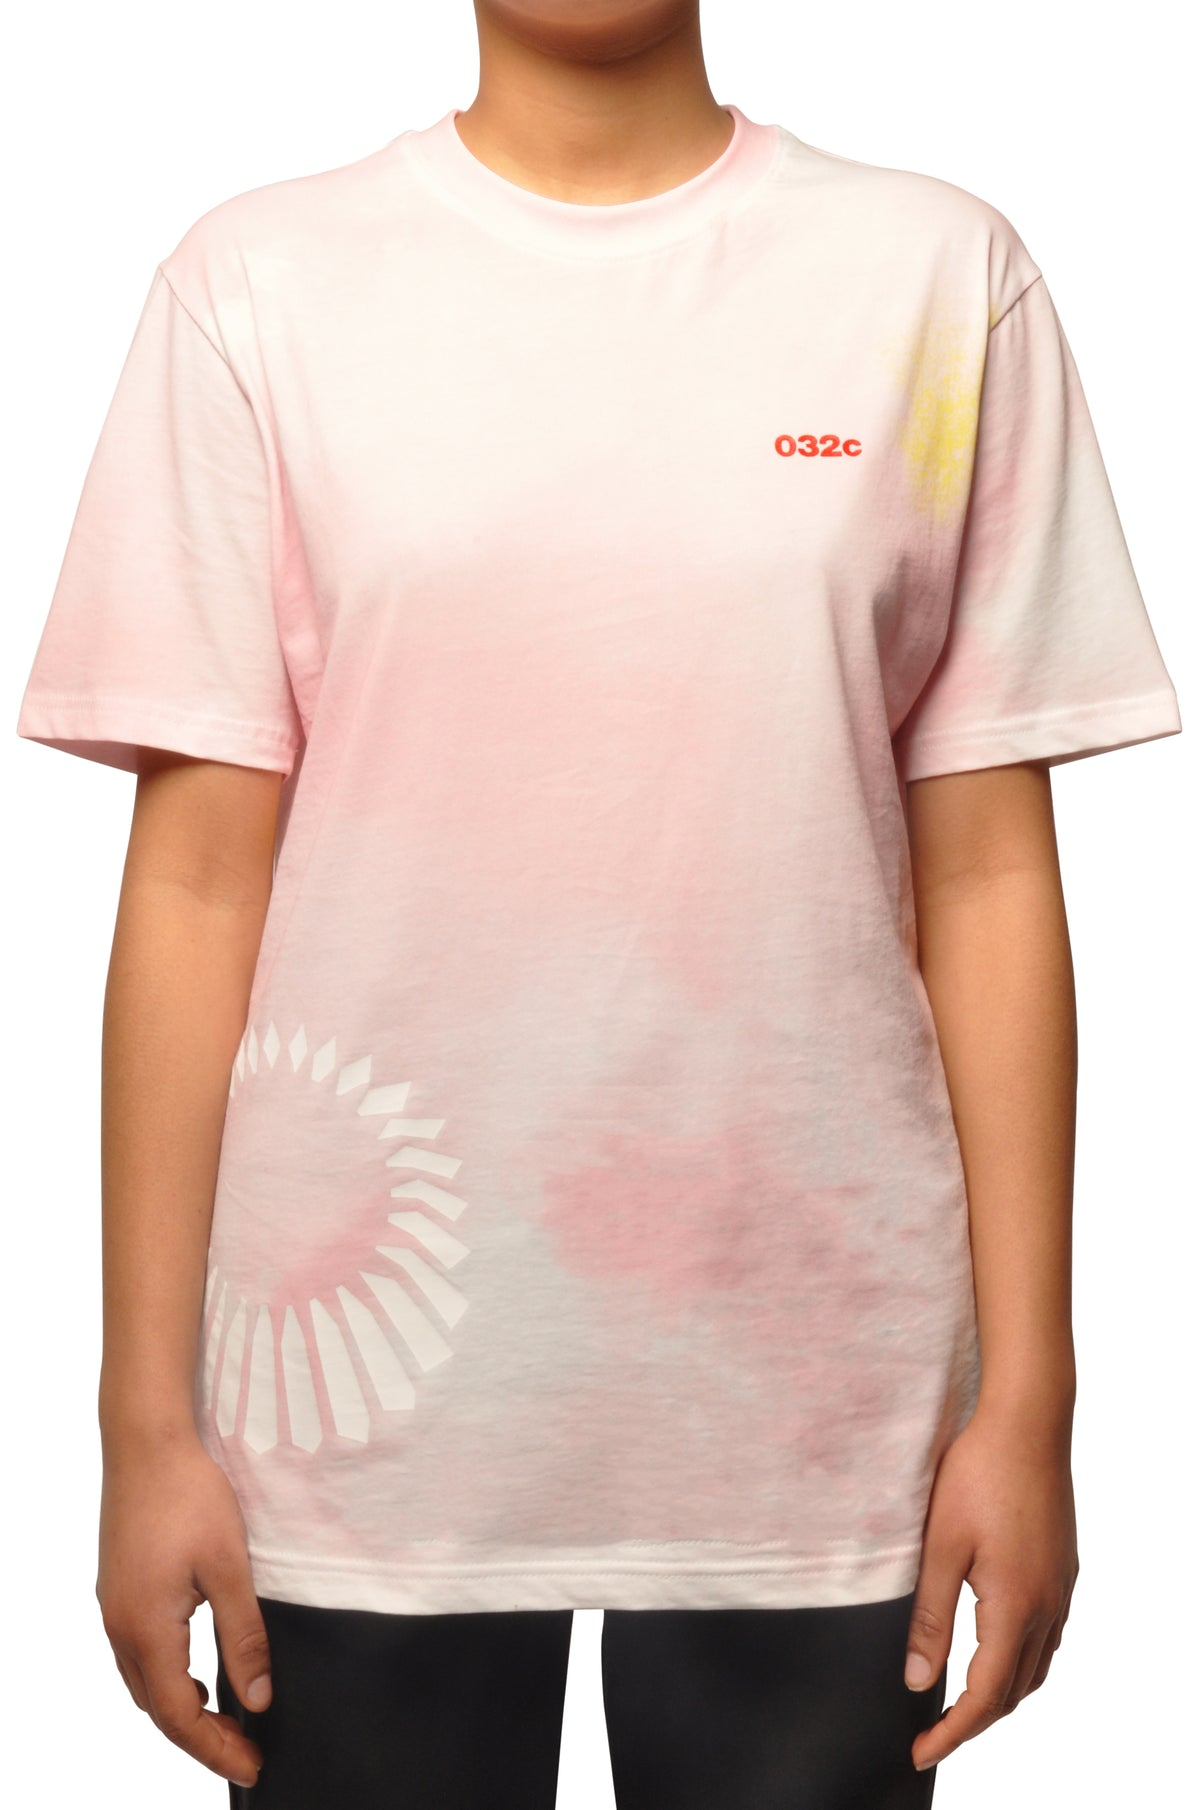 "032c COSMIC WORKSHOP ""Upper"" T-Shirt in Pink - 032c"